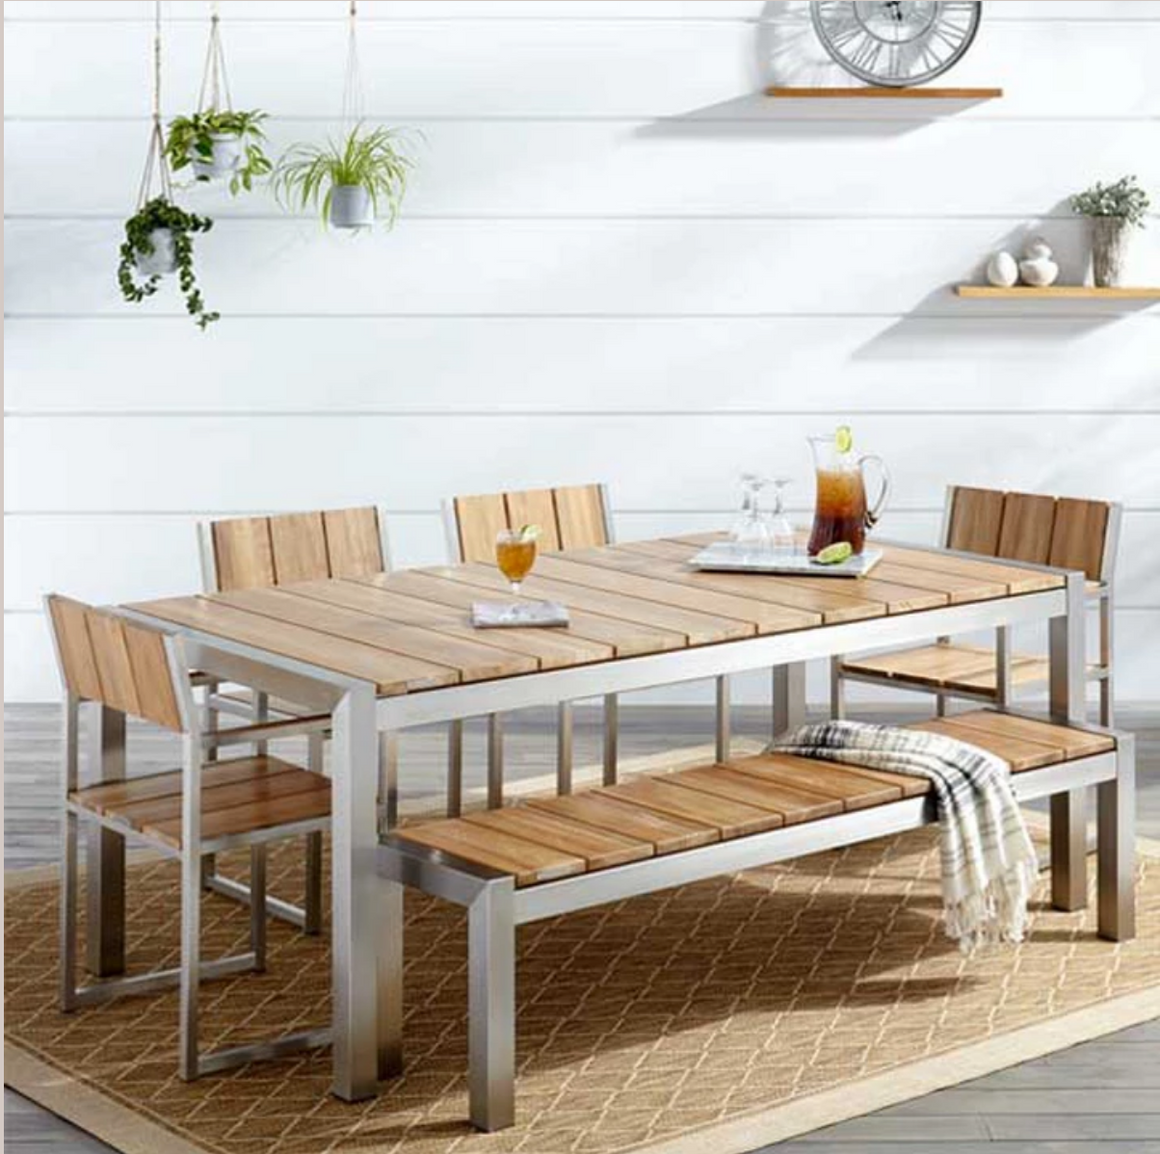 Outdoor Wood & Steel Combo Dining Set - Hawthorn